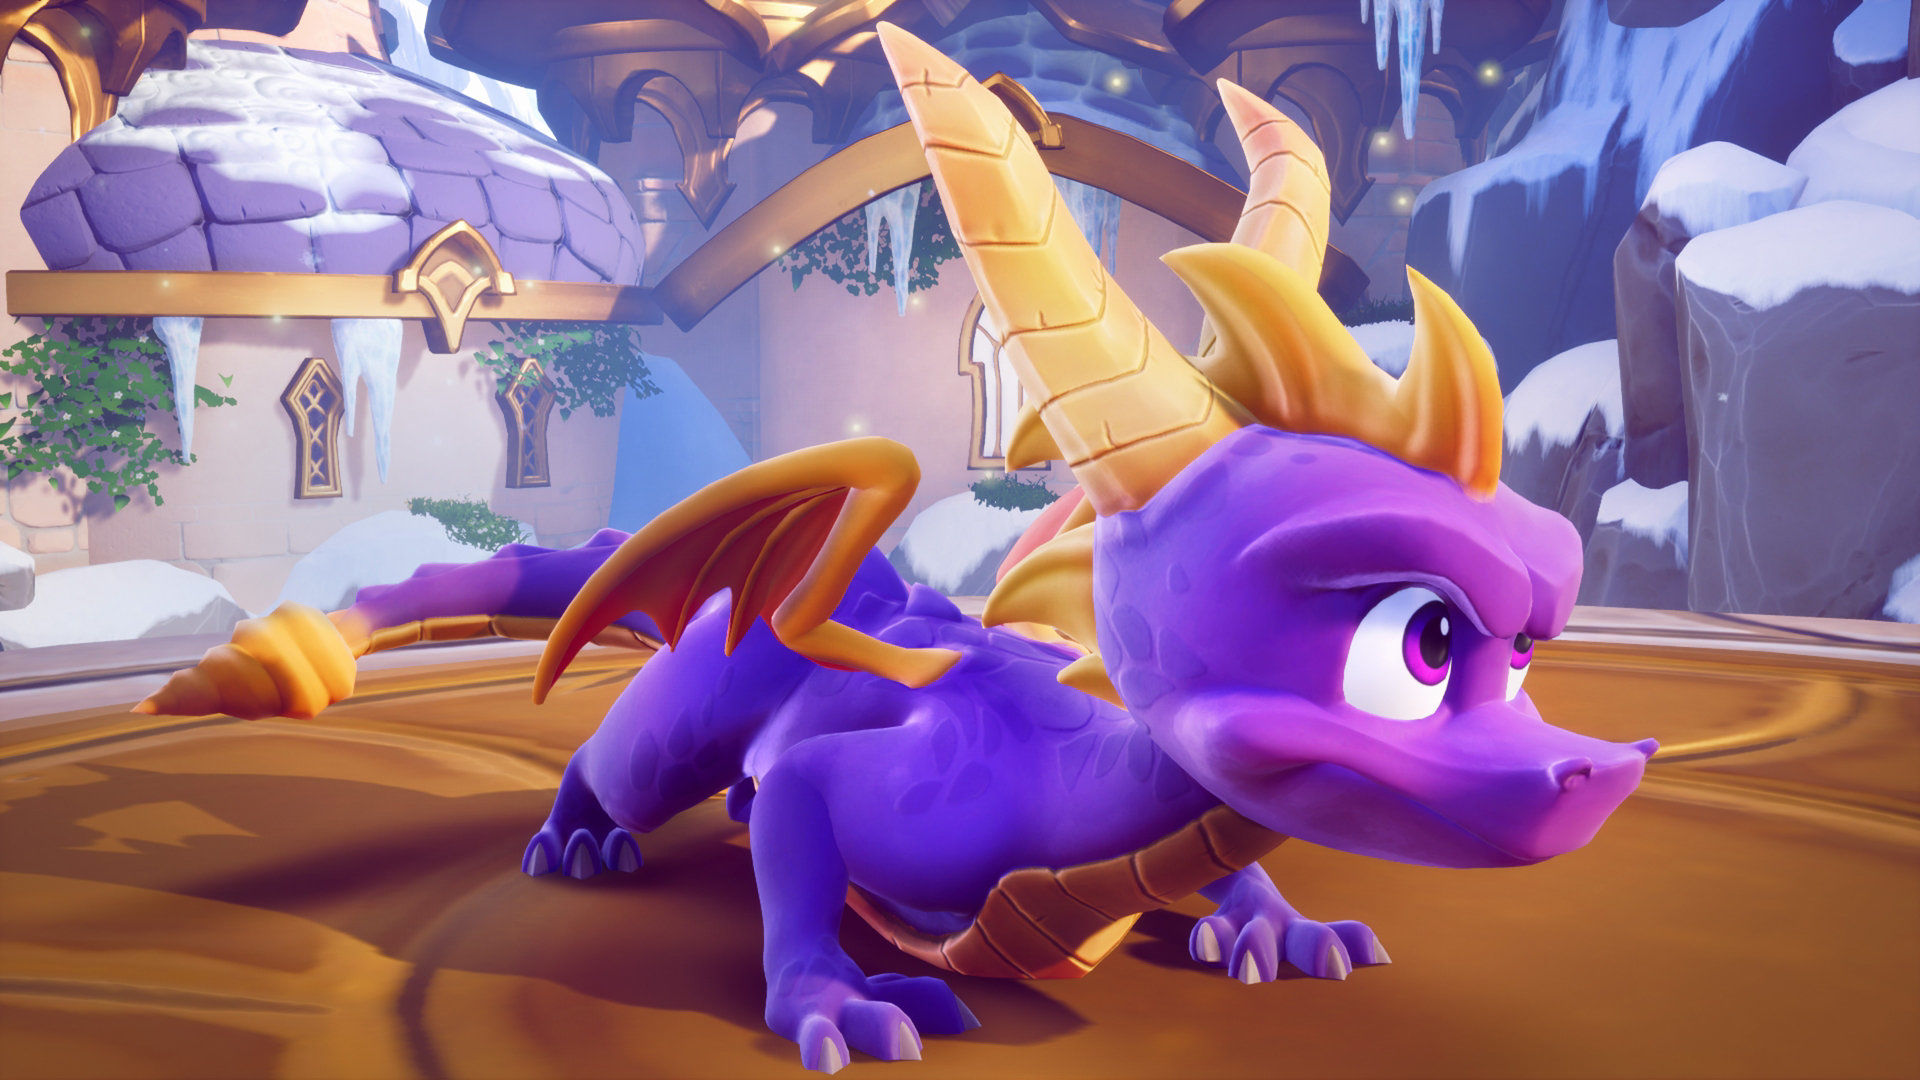 A History Of Spyro The Dragon And The Outlook For The Future